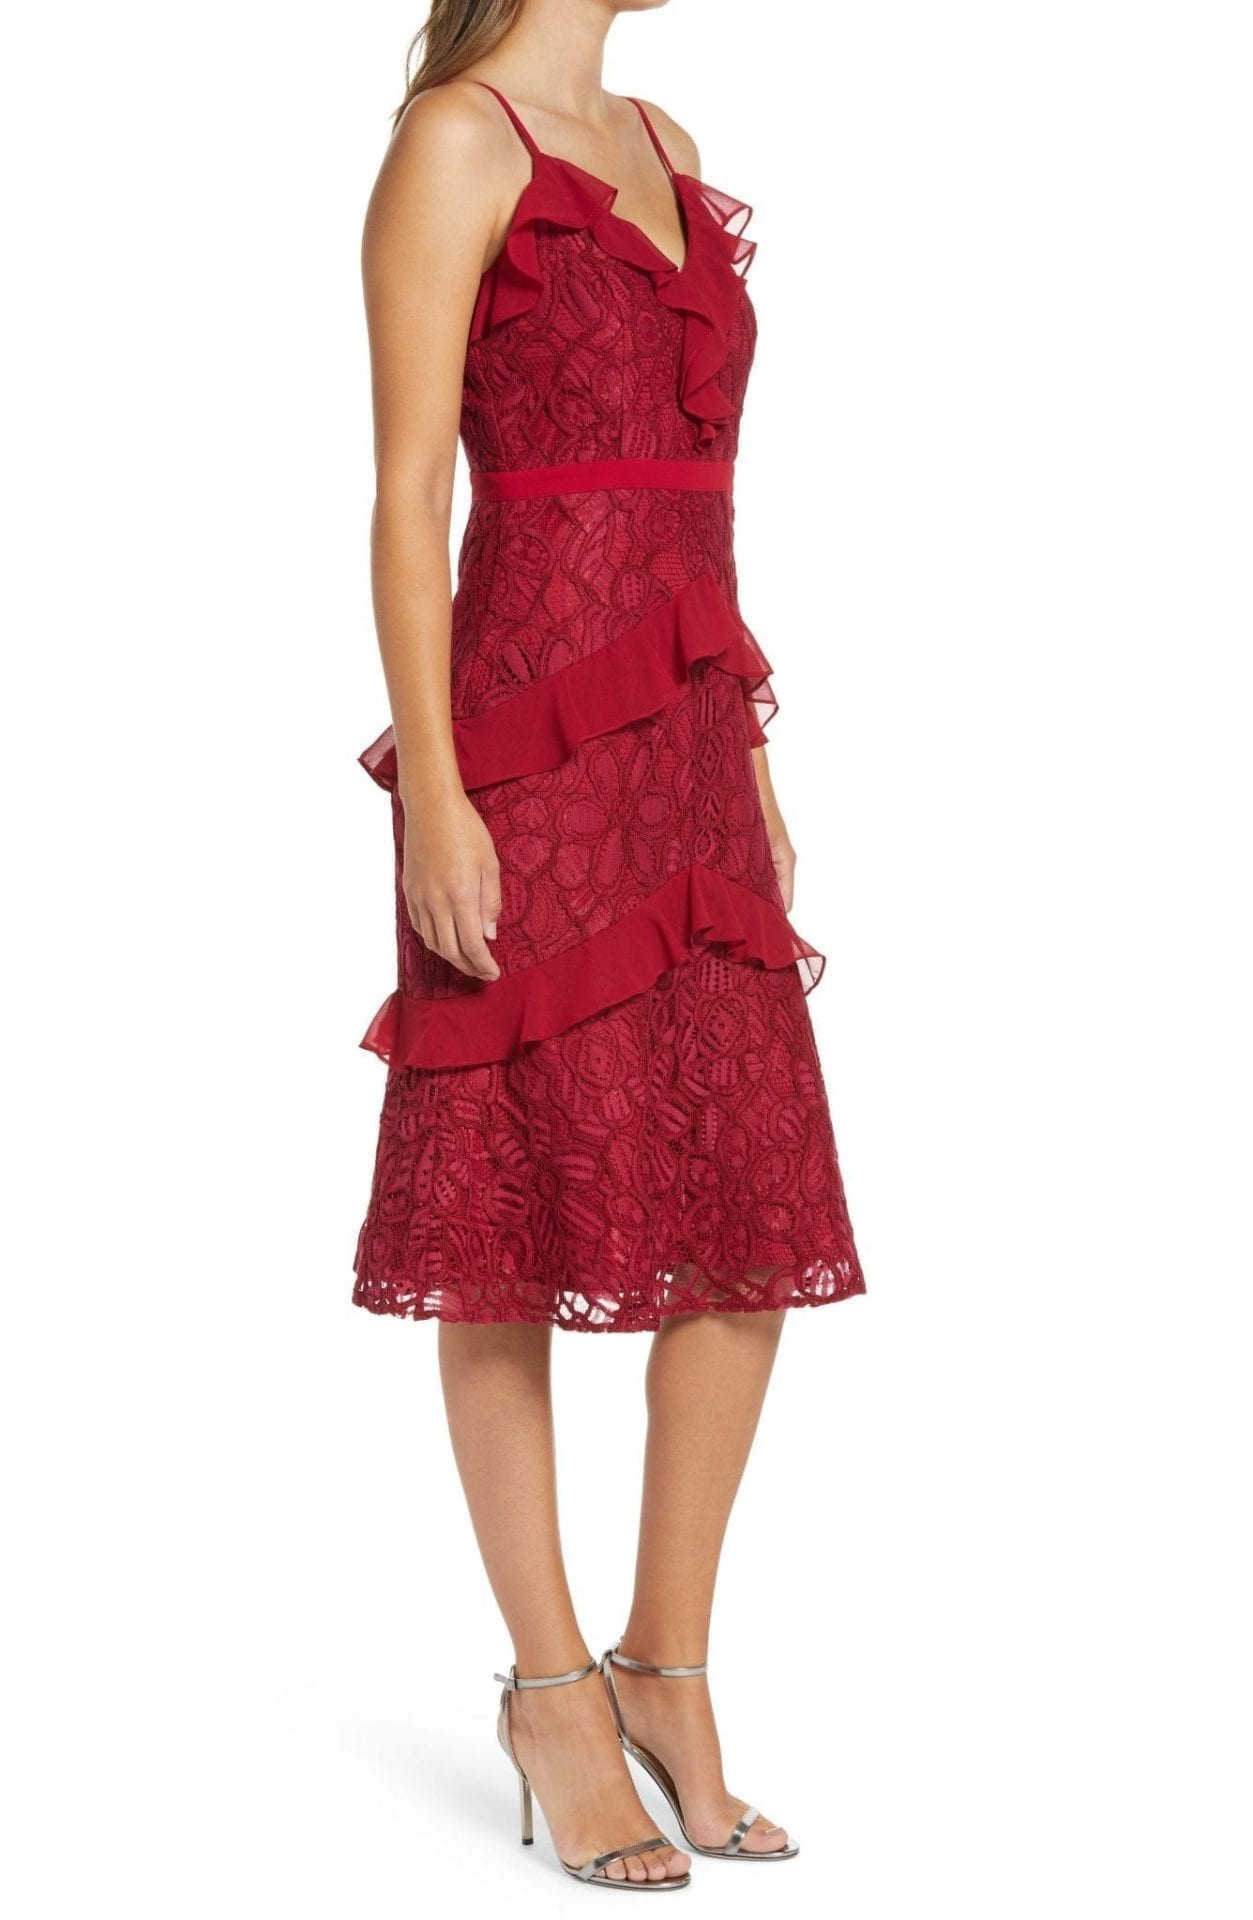 ADELYN RAE Enslie Embroidered Lace Dress